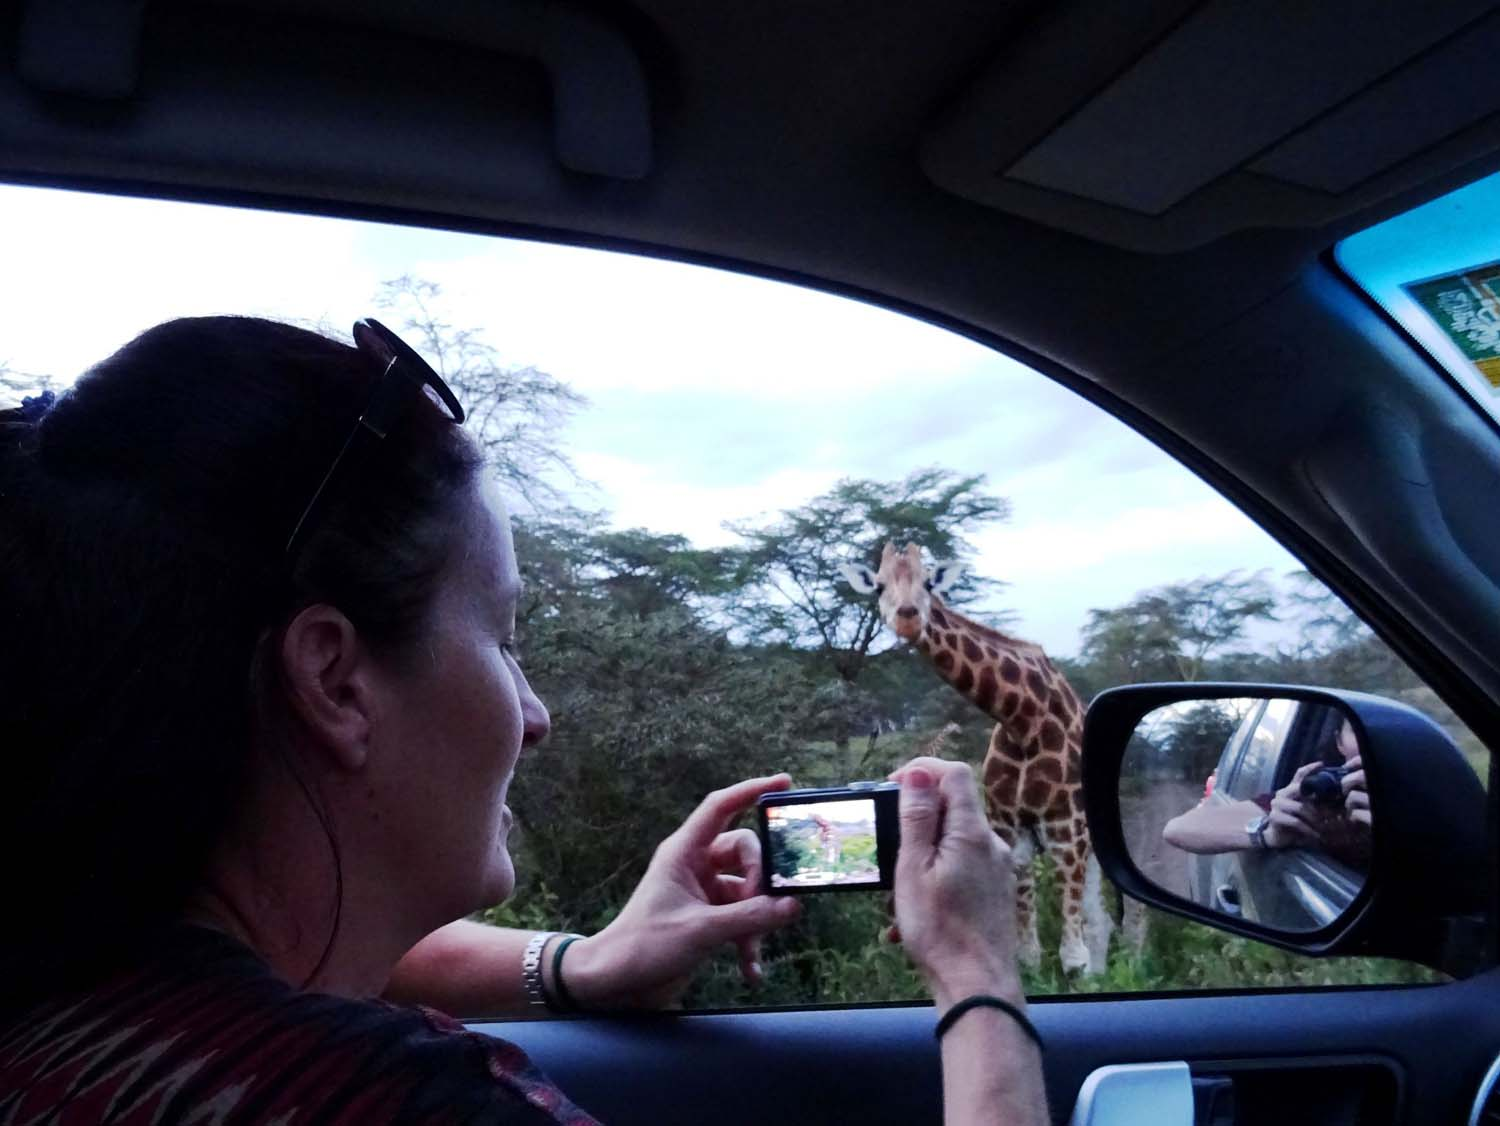 Kat taking photos of the beautiful Rothschild's giraffes